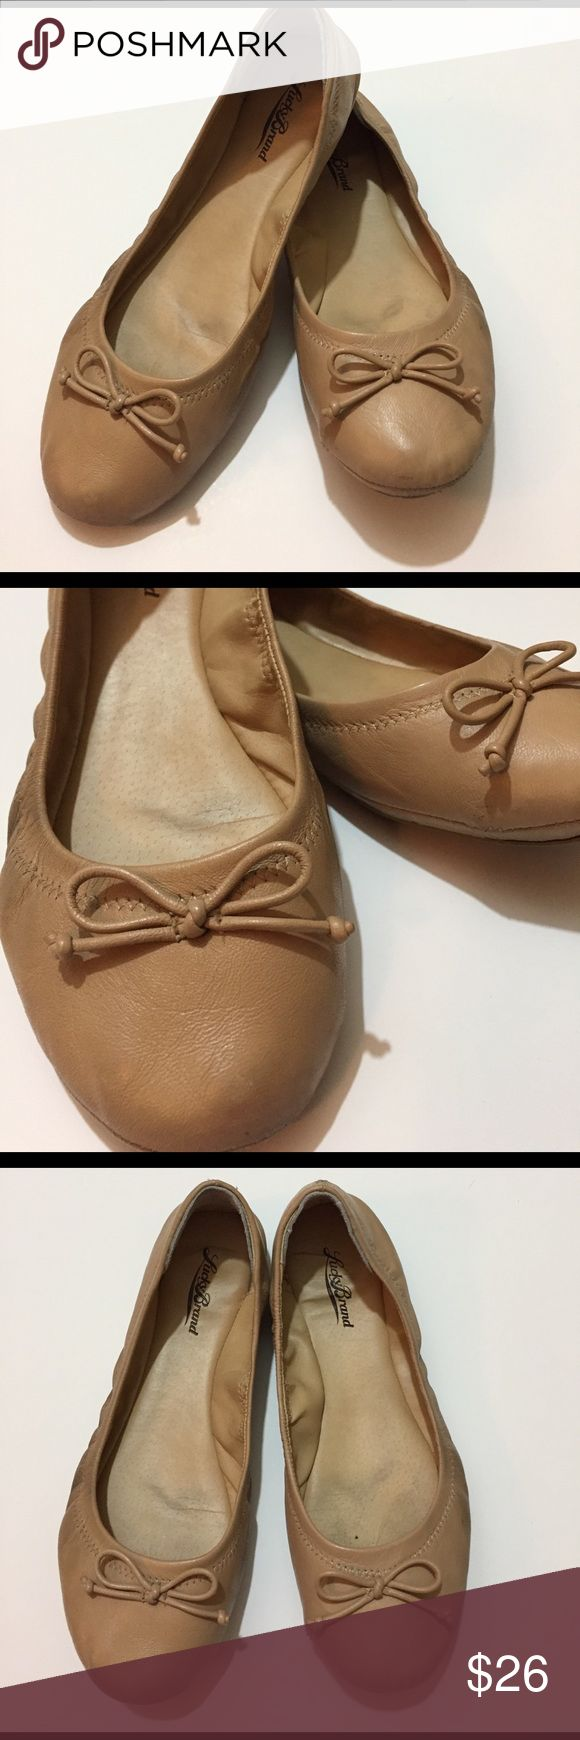 Lucky Brand ballet slipper - leather Super duper soft like butter! Nude leather ballet flats by Lucky Brand. Some scuffing on sides and a few stitches coming undone on left shoe. Lots of life left in these. Super cute. Lucky Brand Shoes Flats & Loafers